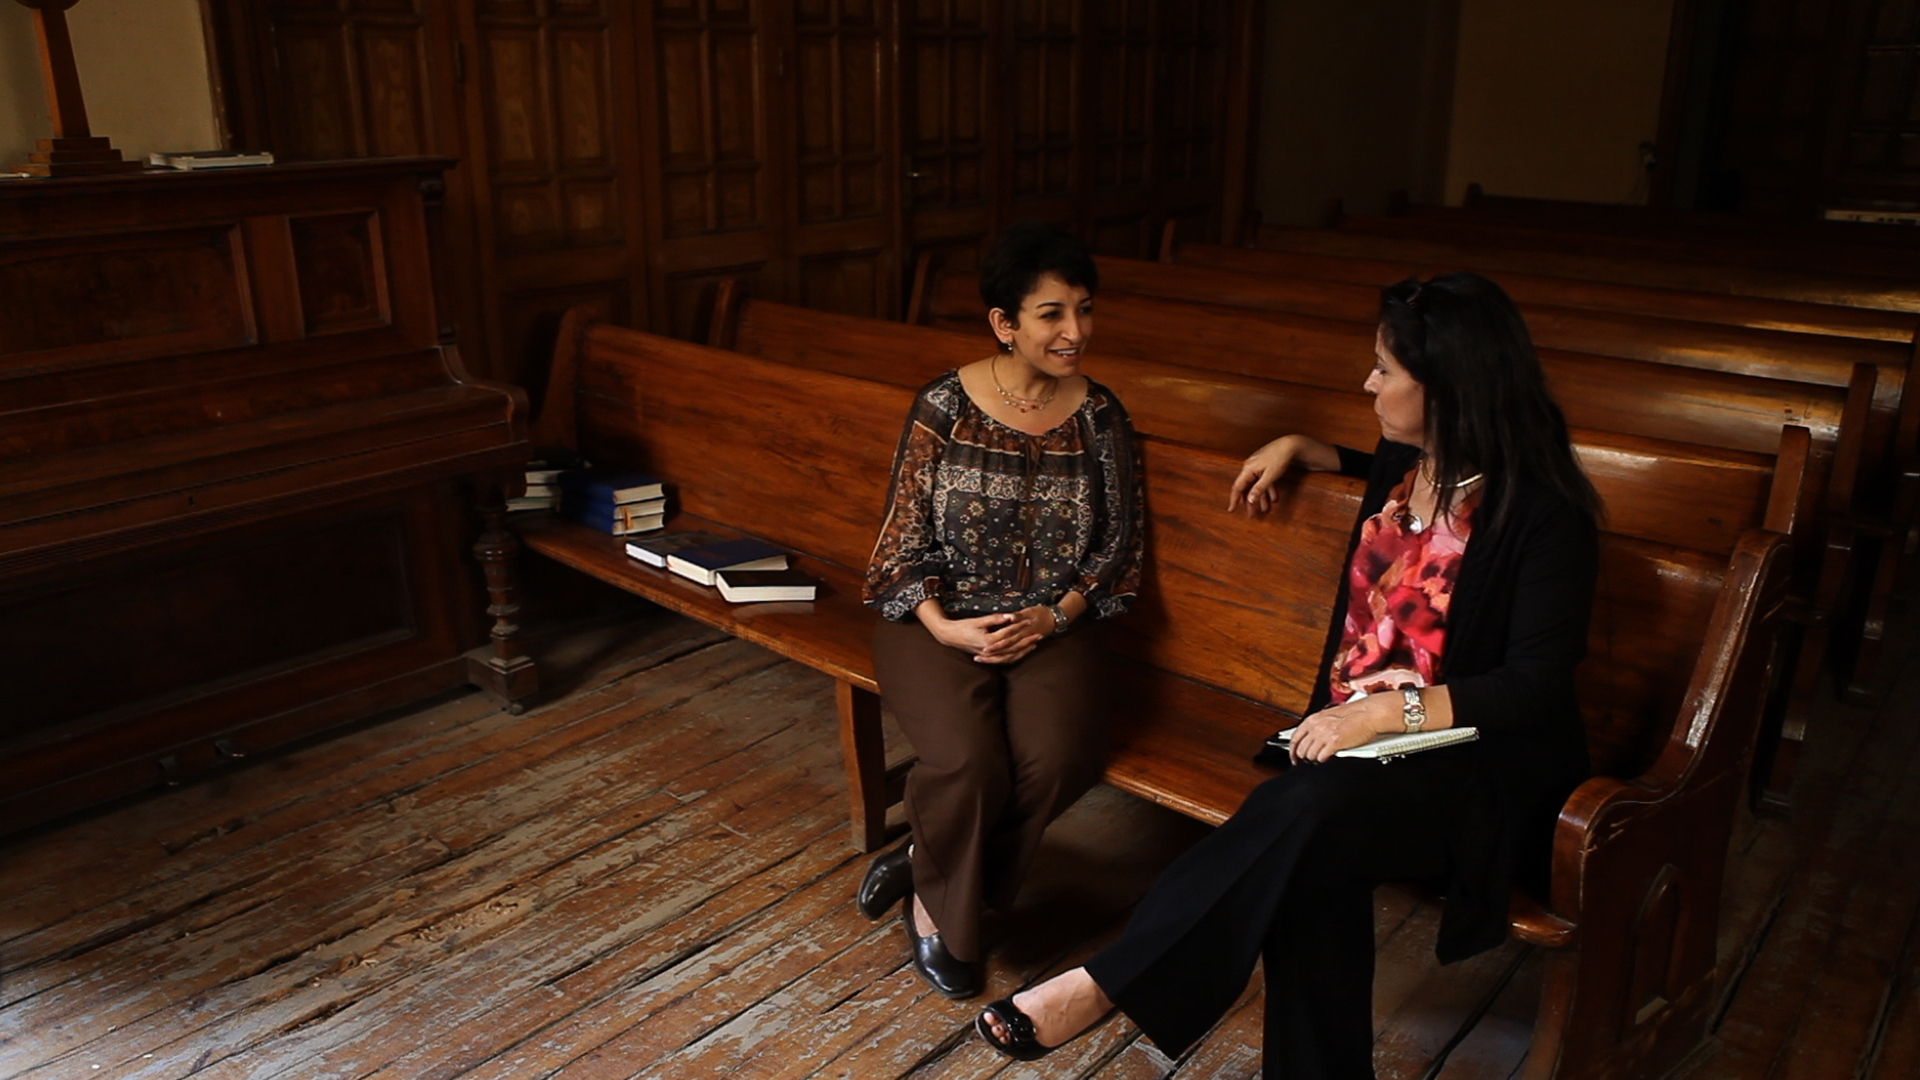 Anne Amile Zaki, the first woman to graduate from seminary in Egypt explains how she waits to be the first woman ordained in the entire Middle East